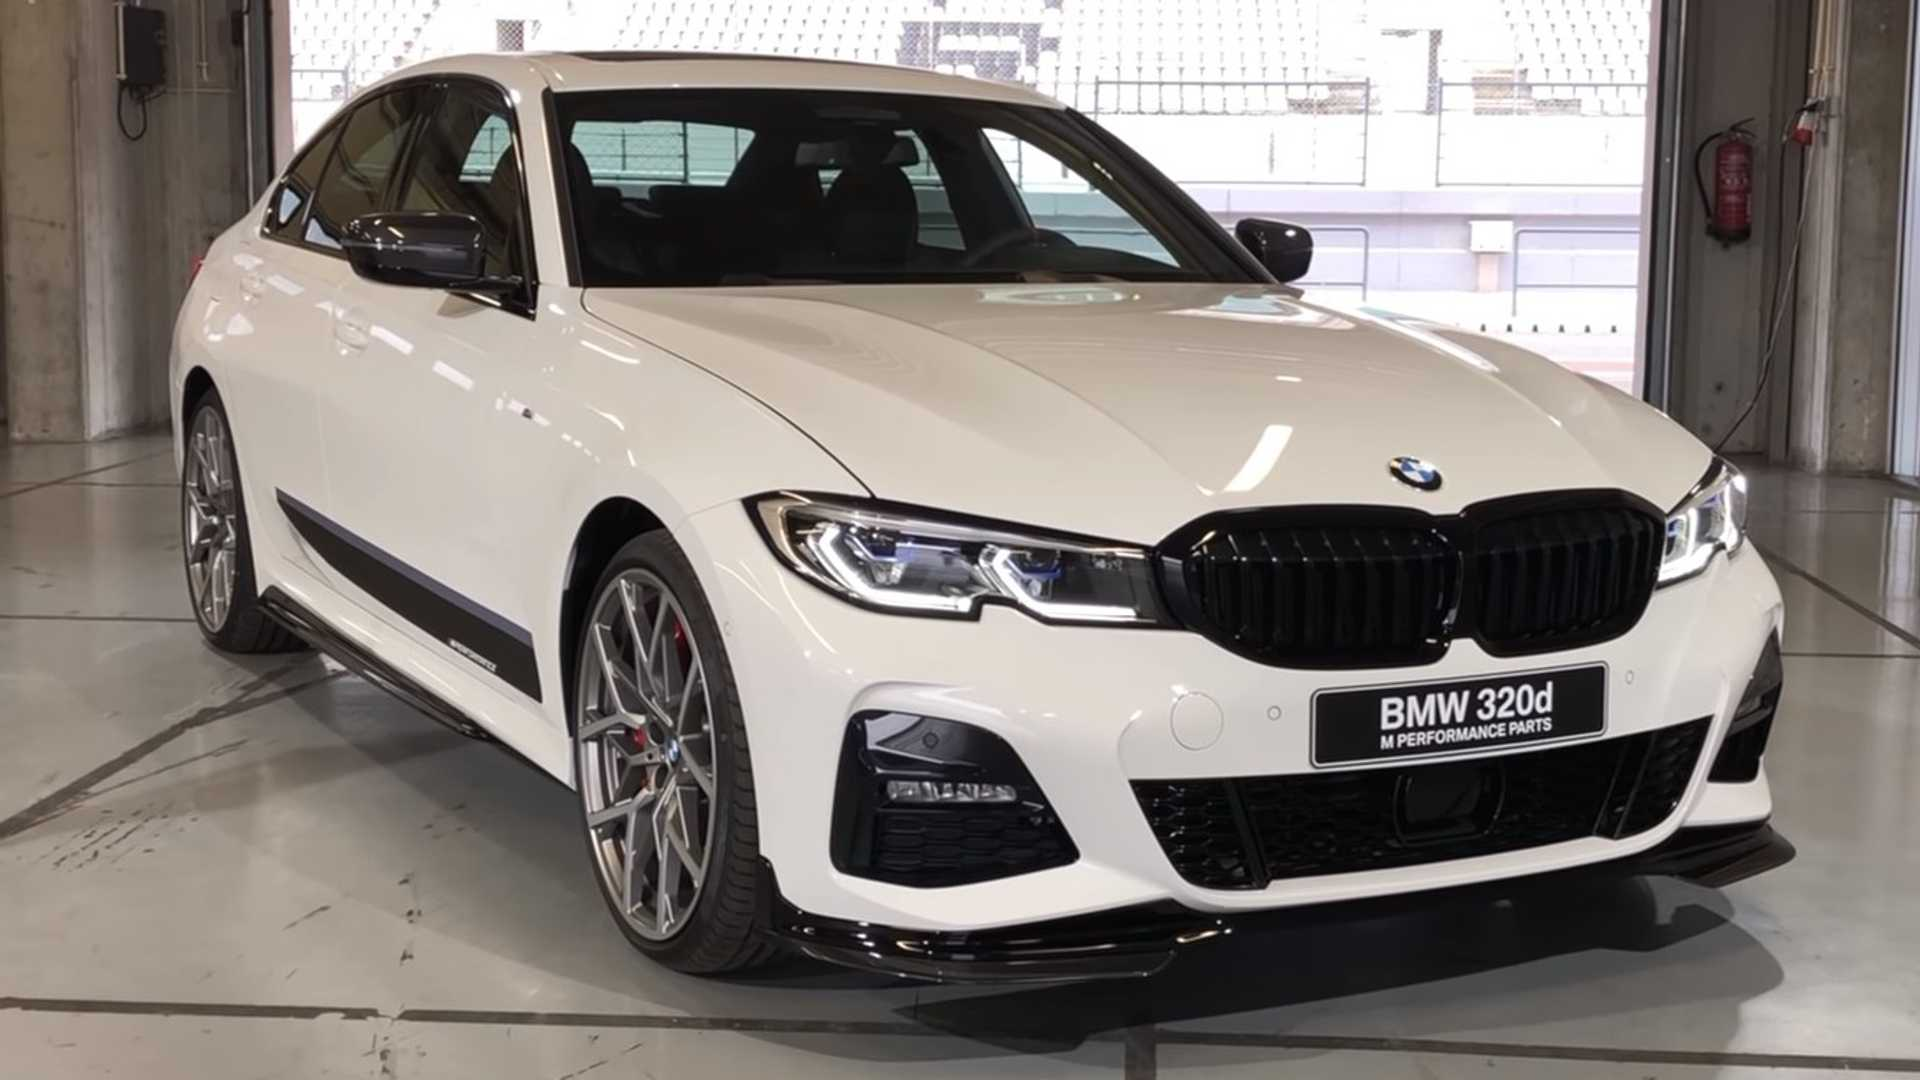 67 A 2019 BMW 3 Series History